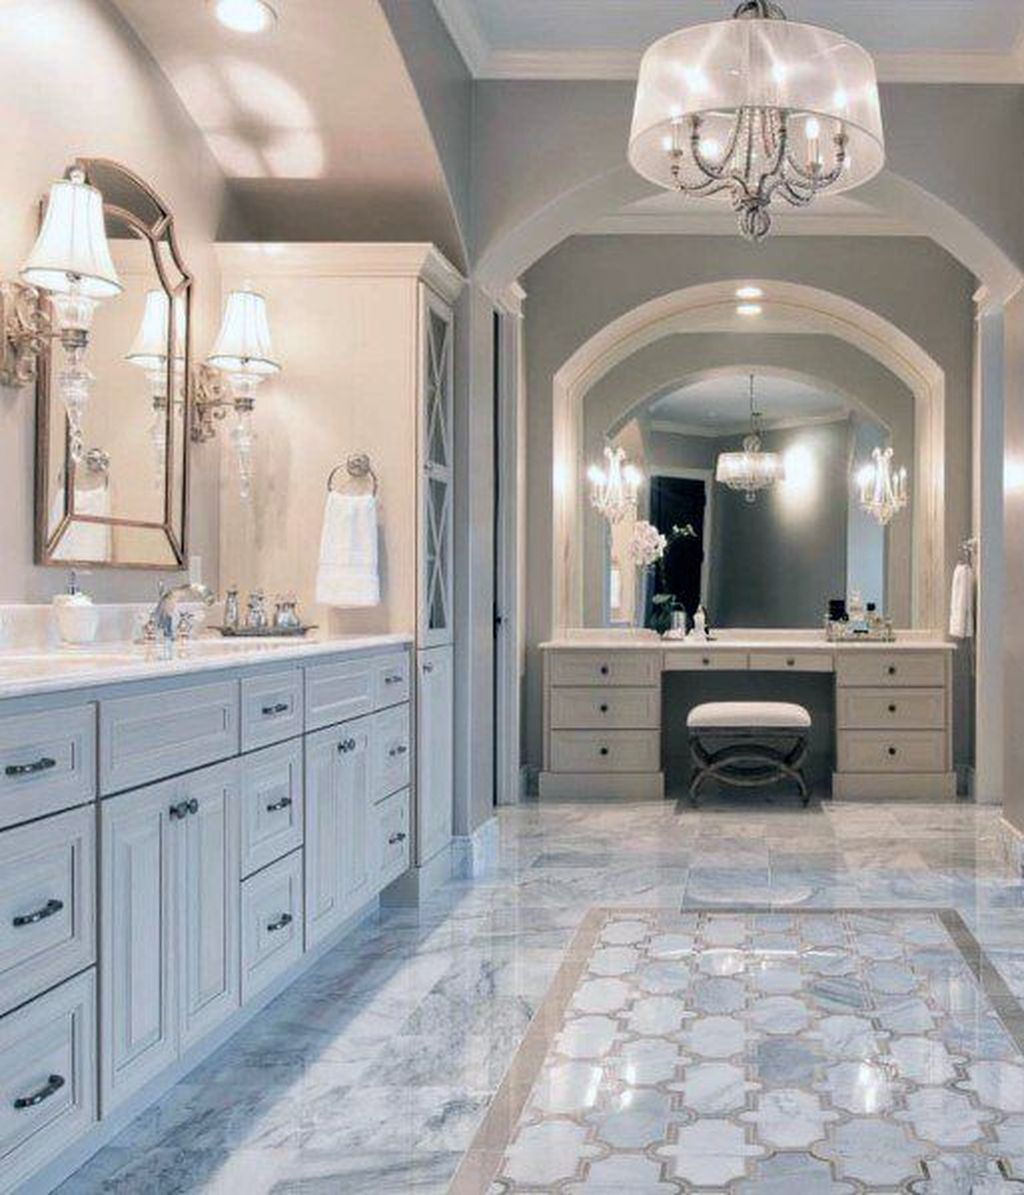 Luxury Bathroom Design And Decor Ideas 03